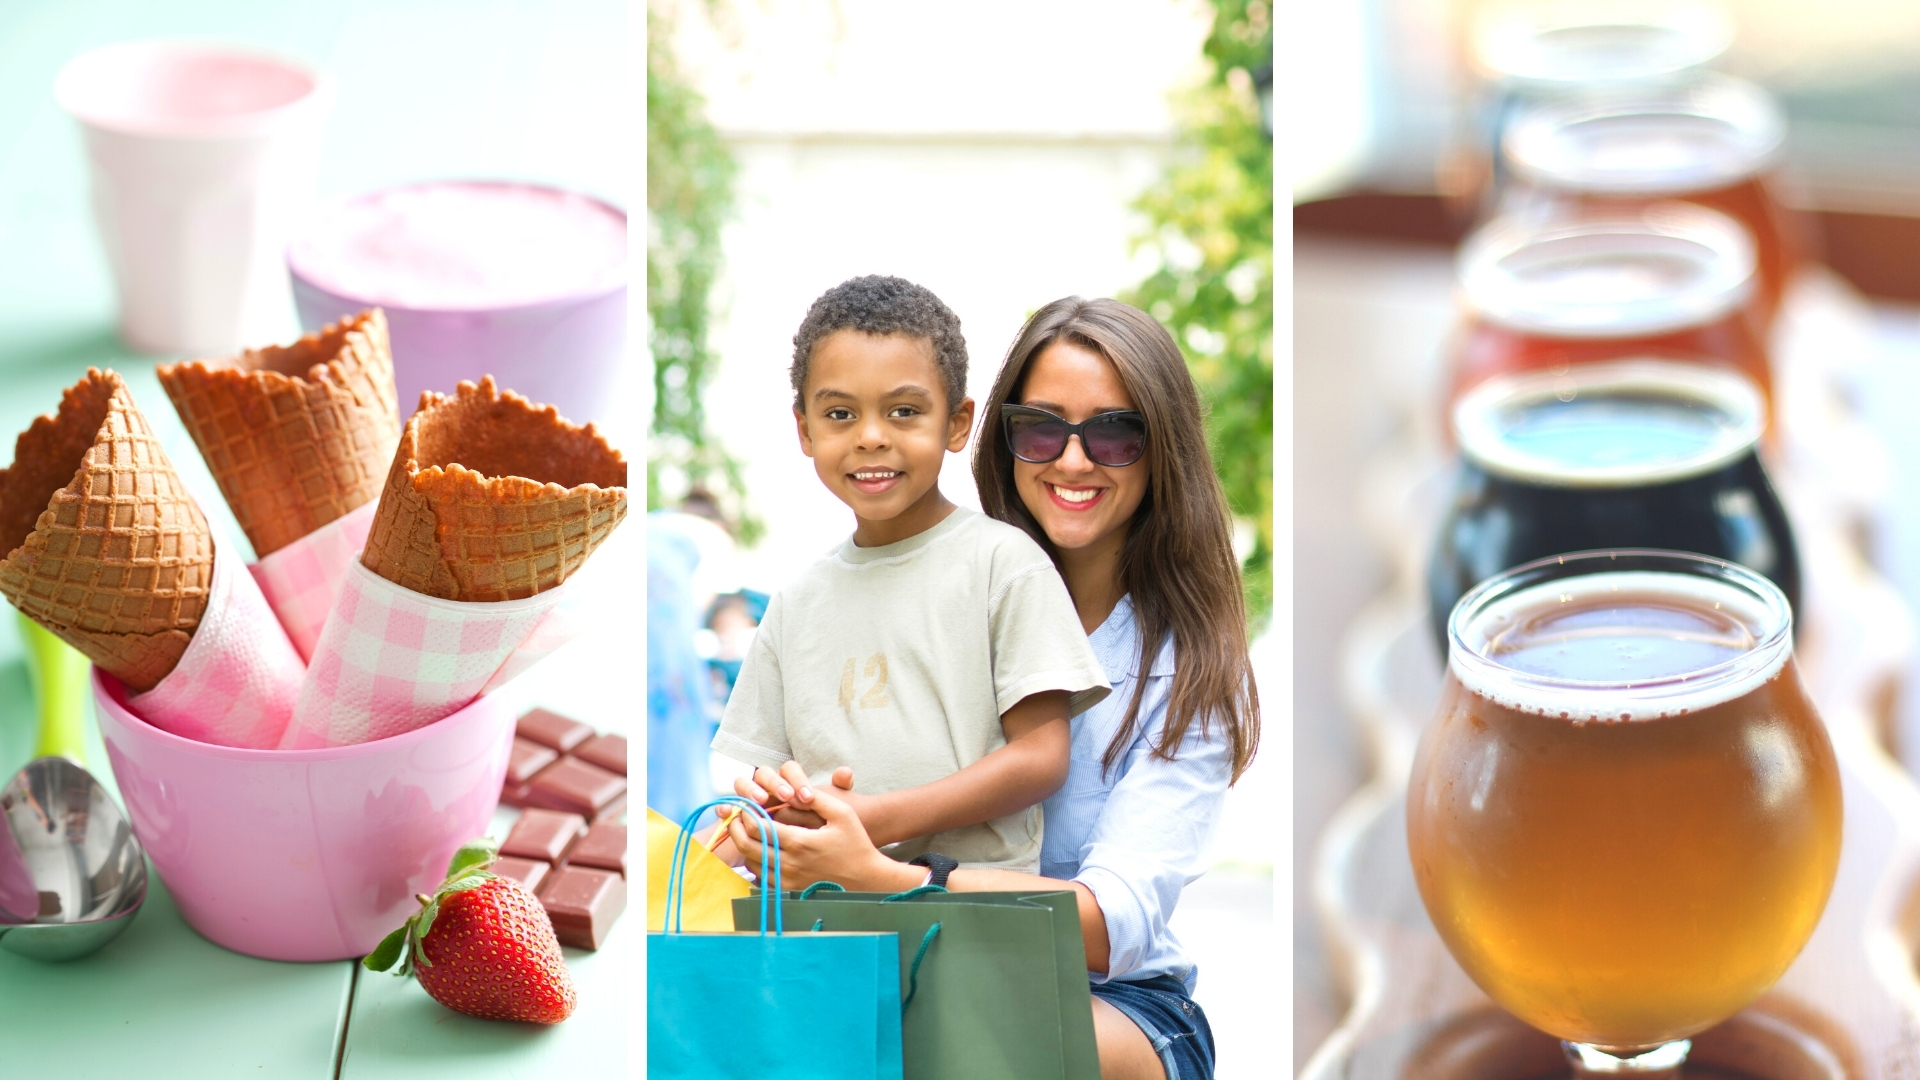 Indulge this Summer on Kiawah Island - Ice Cream, Shopping, Food, and More